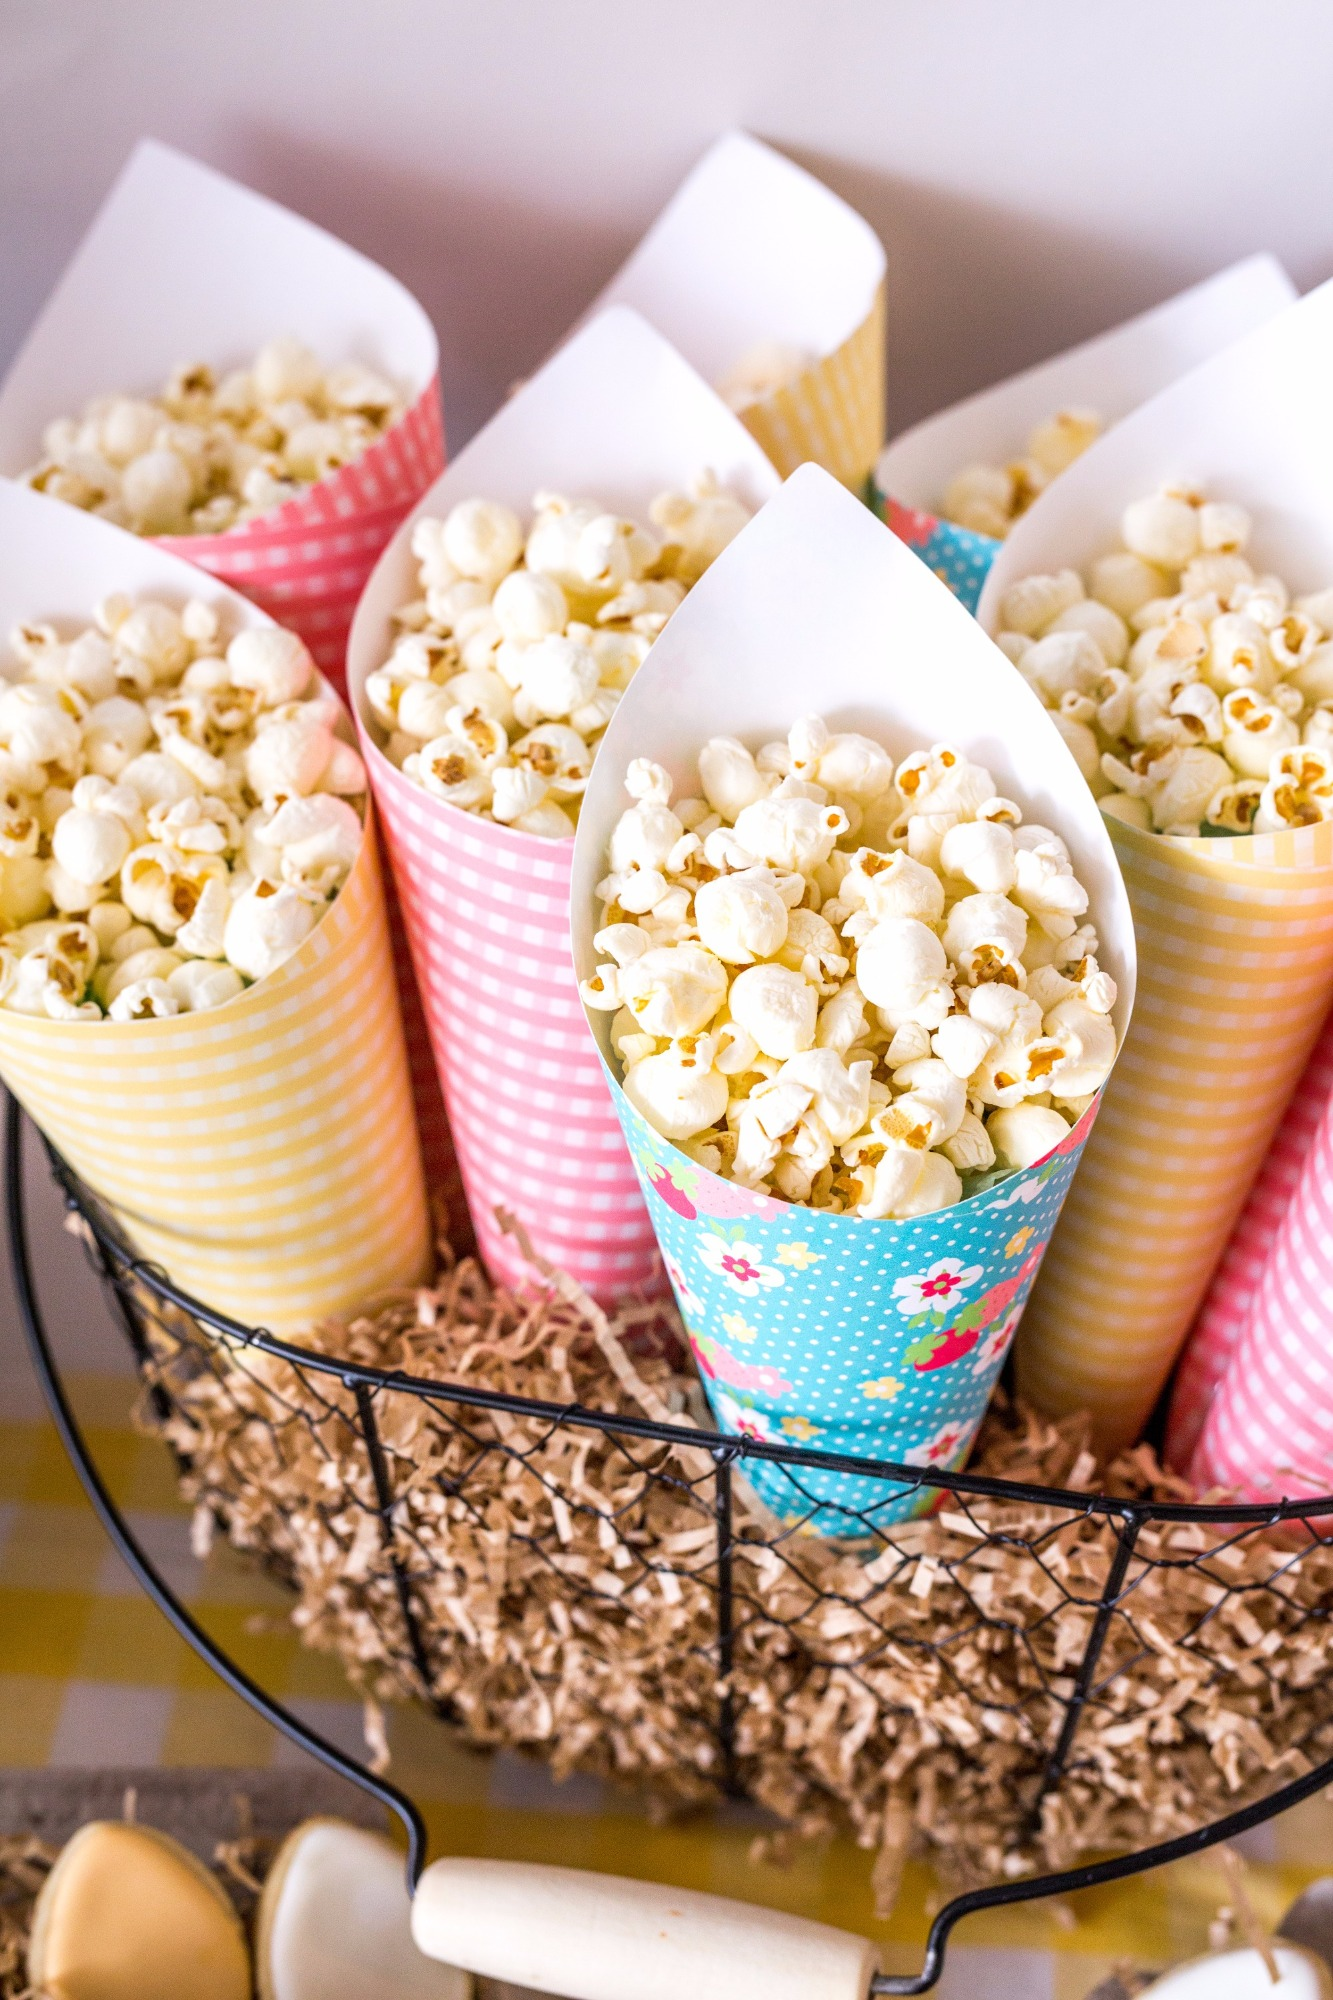 Popcorn Funnels in Basket from Farm Fresh Baby Shower Styled by Black Twine